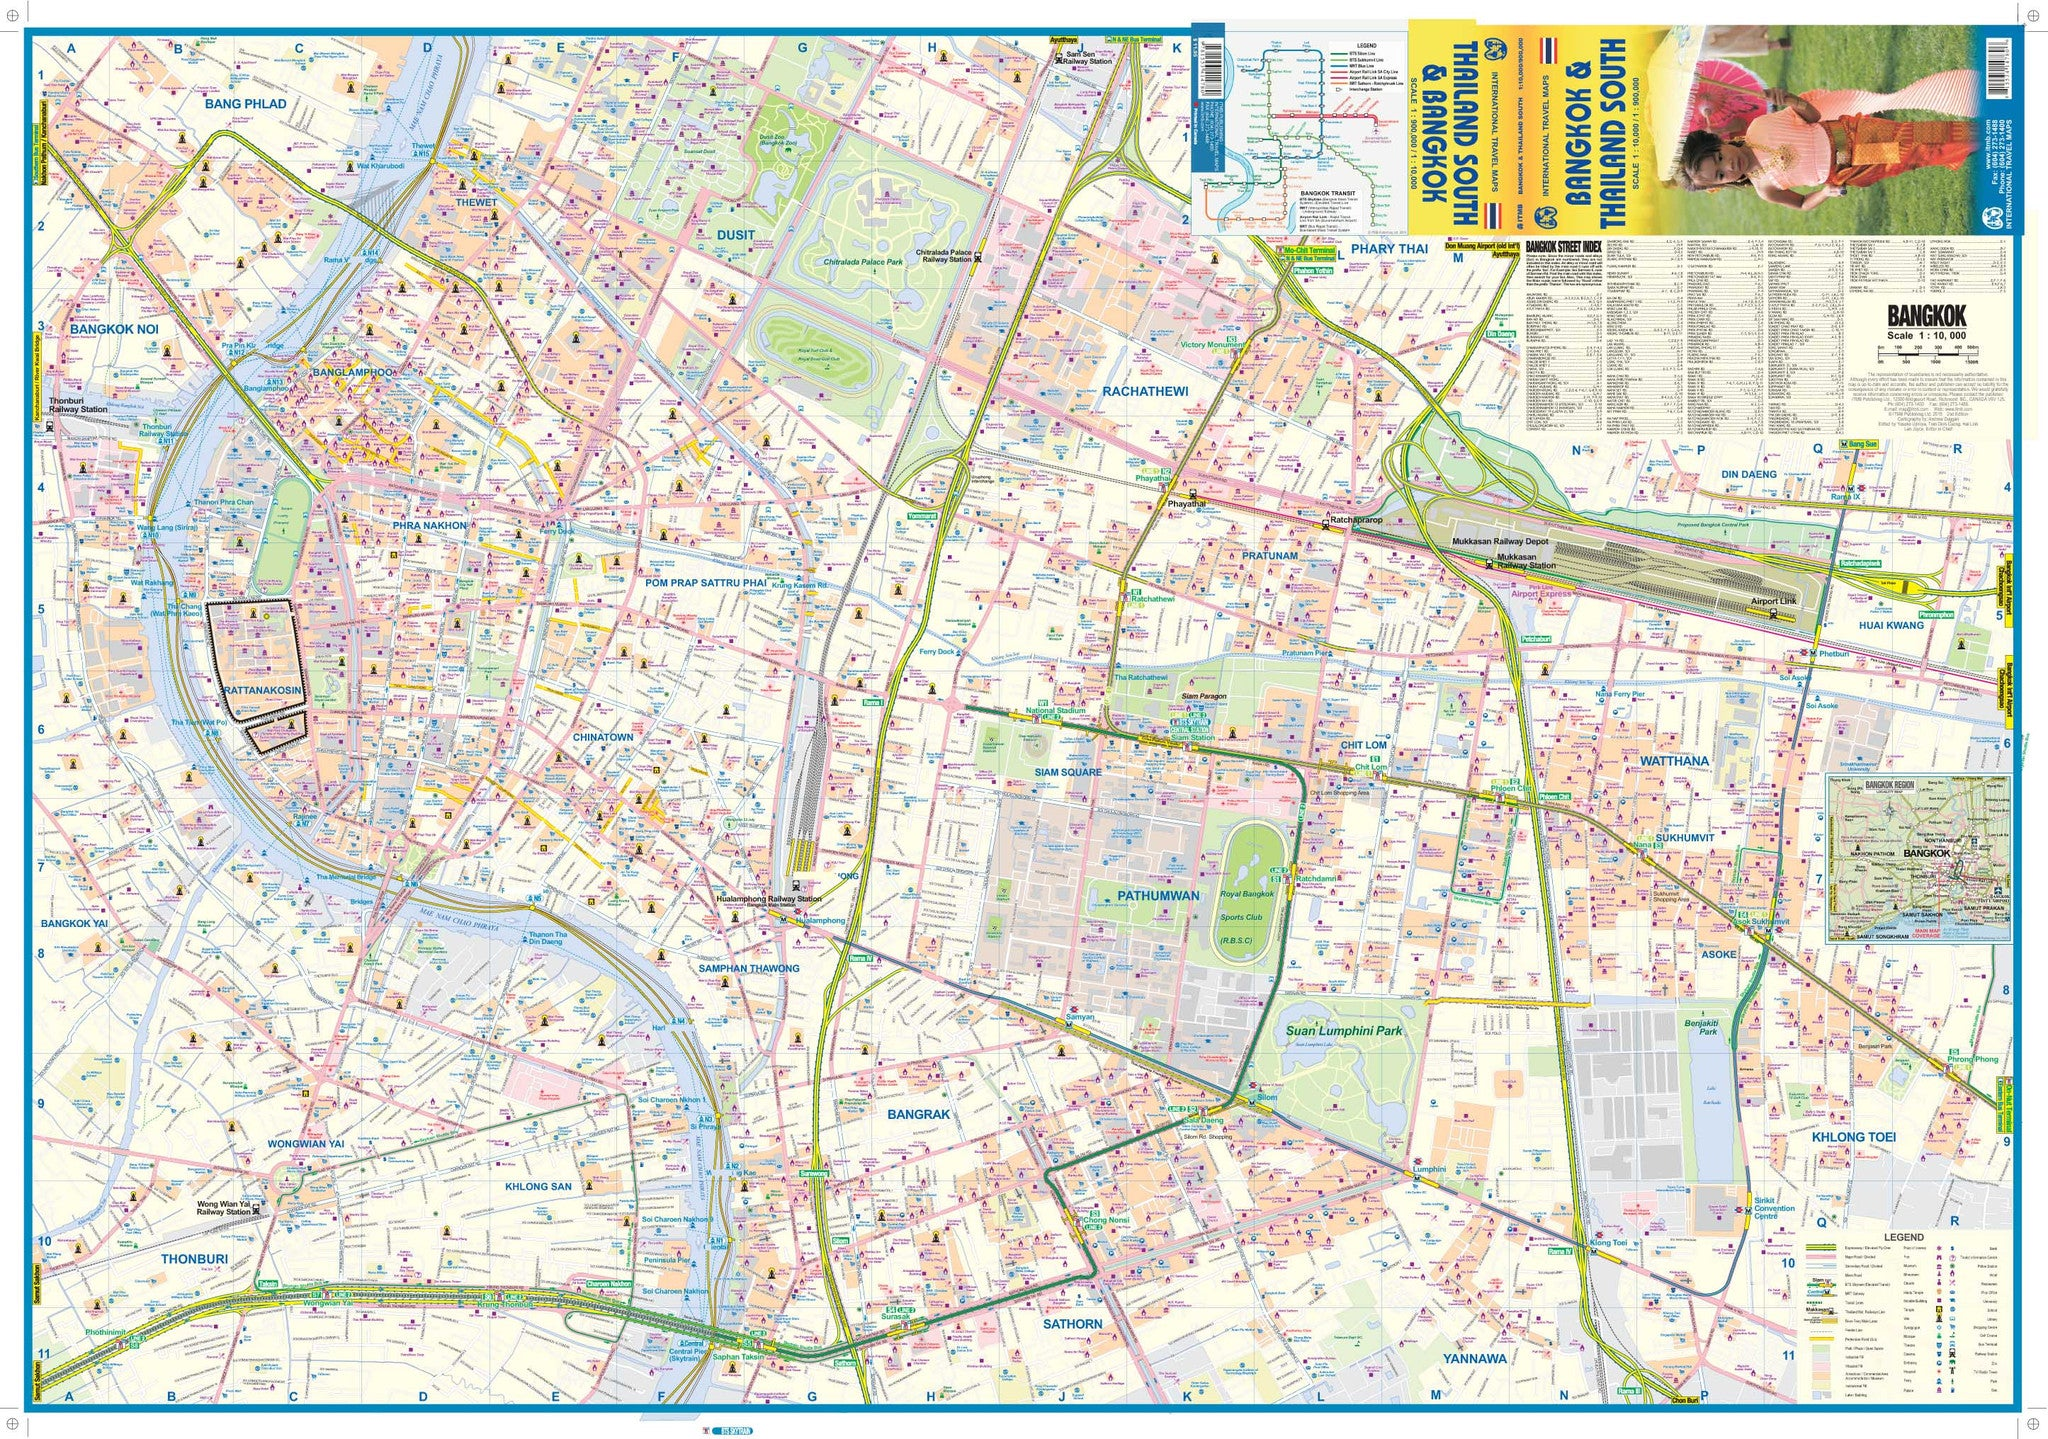 Bangkok ITMB Thailand Map, Buy Map of Bangkok Thailand - Mapworld